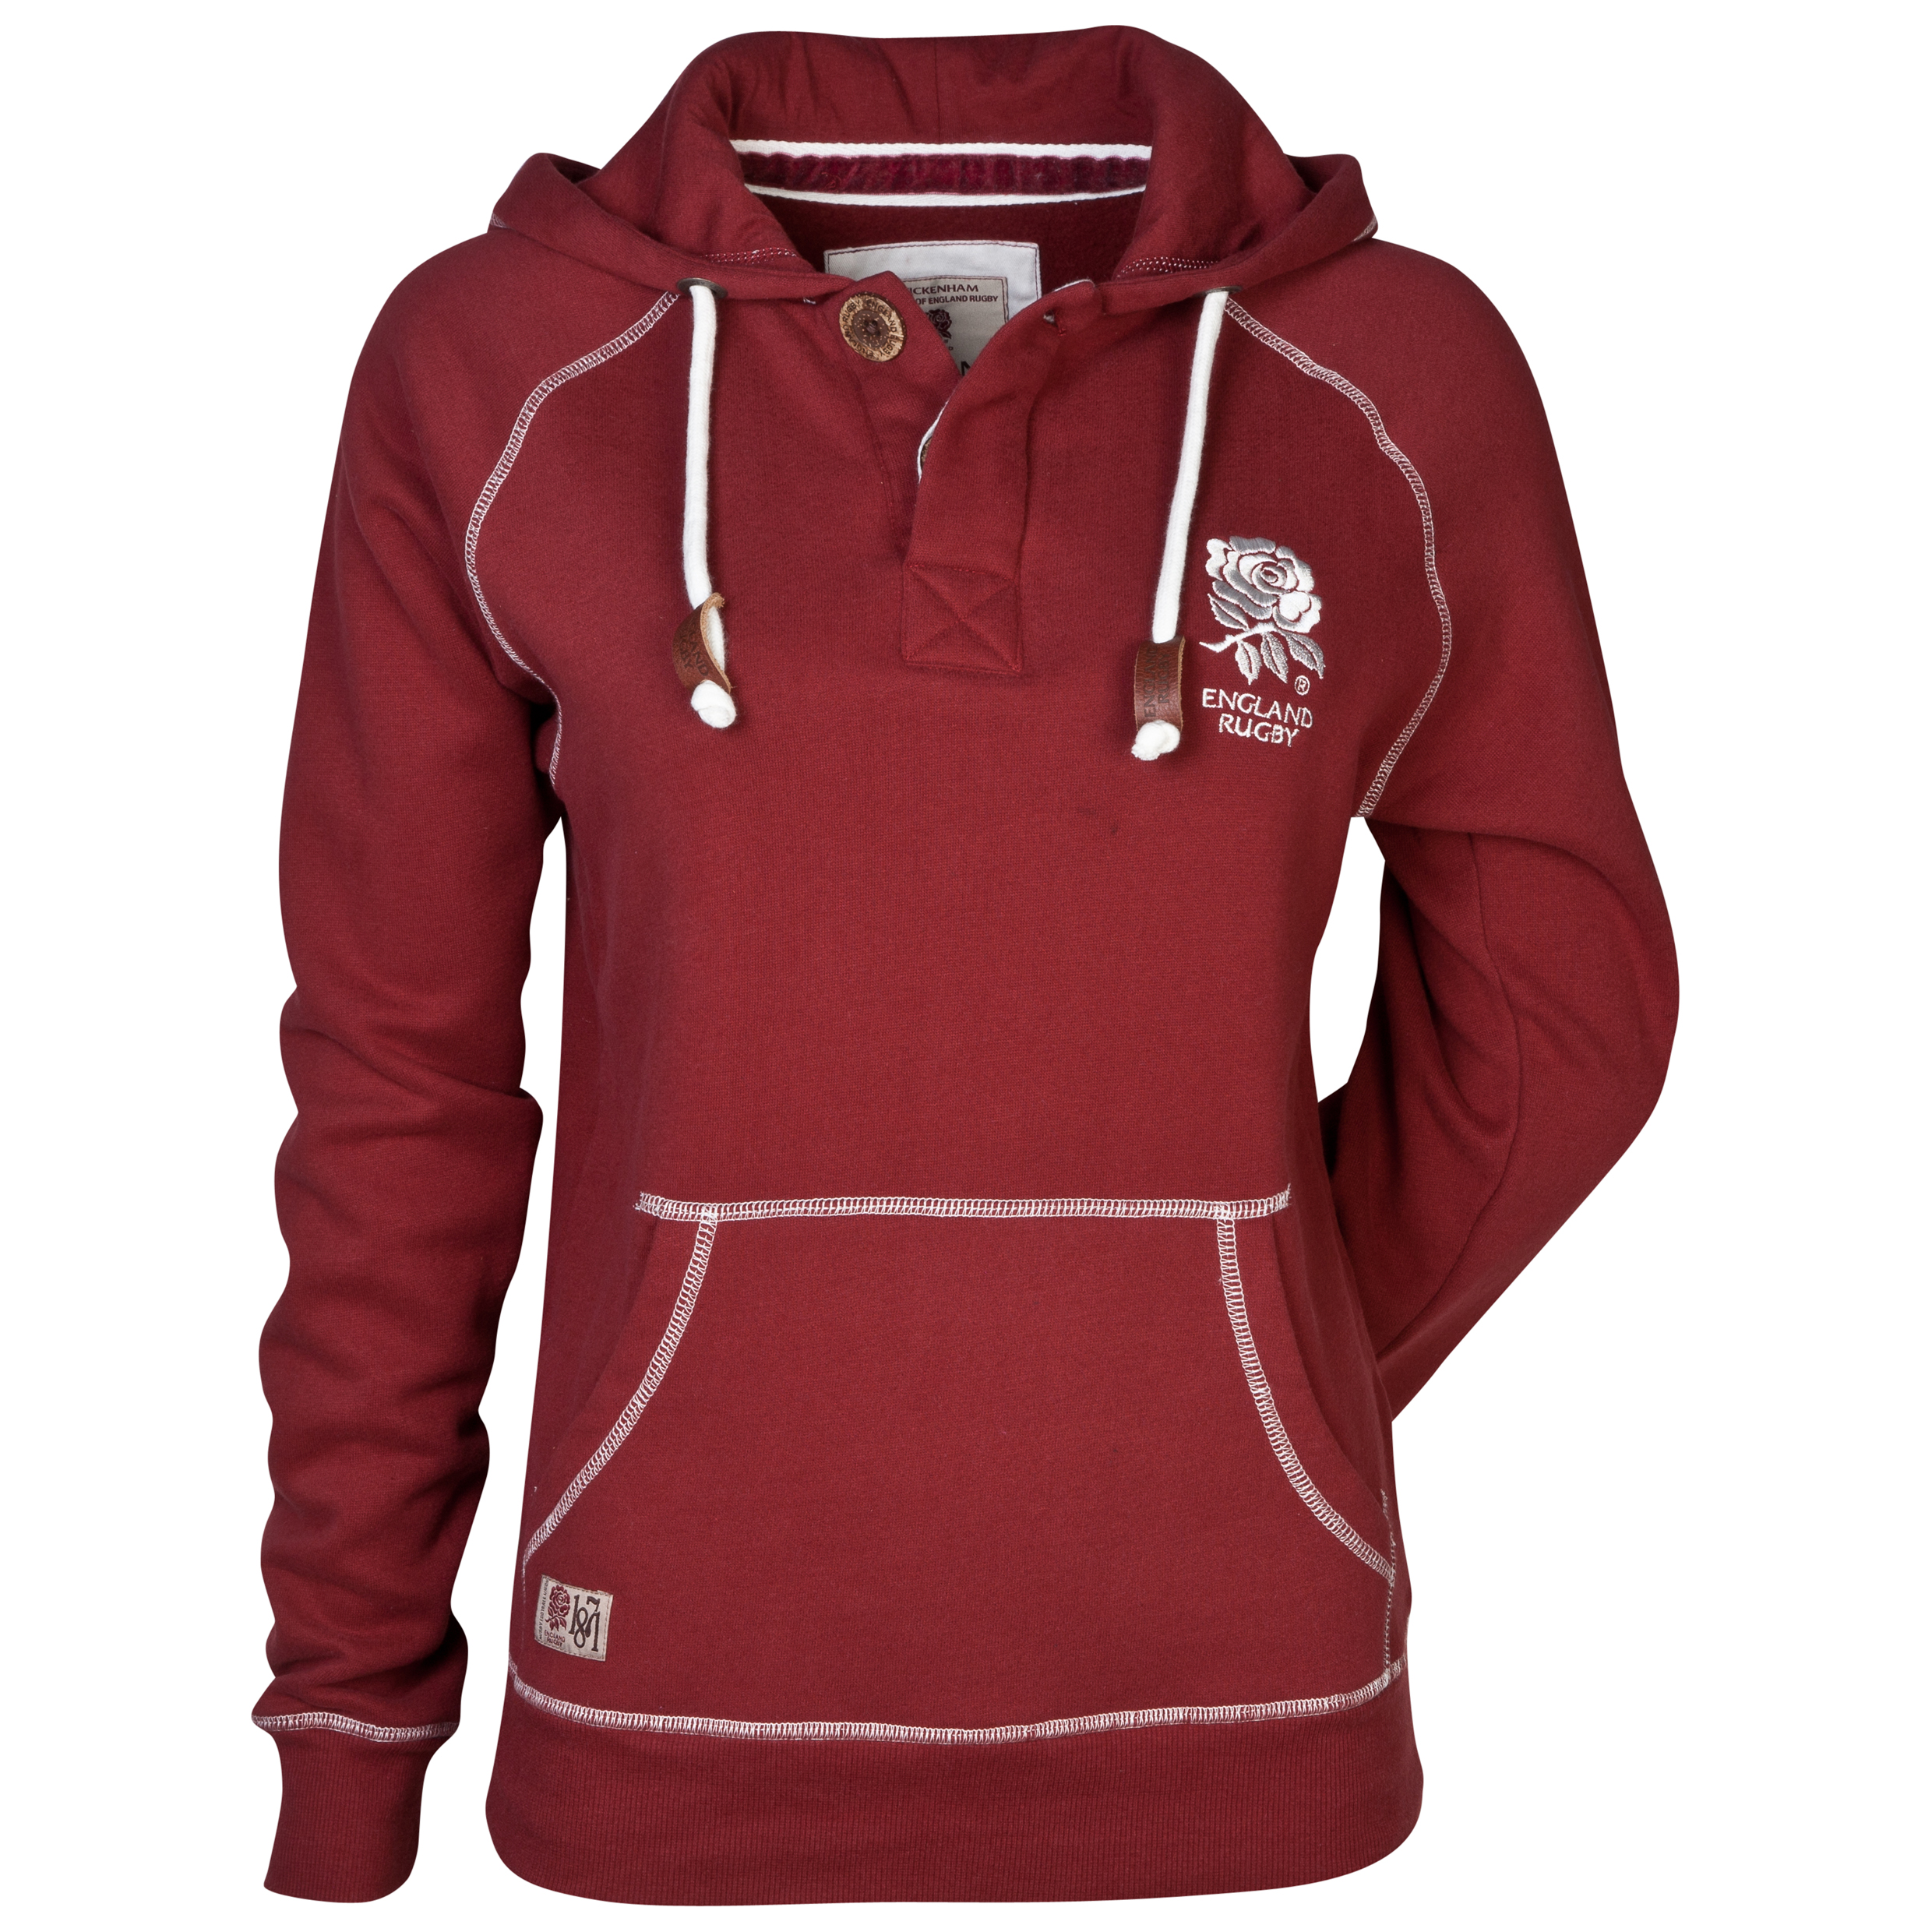 England Rugby Authentics Collection Placket Hoody - Womens Brown